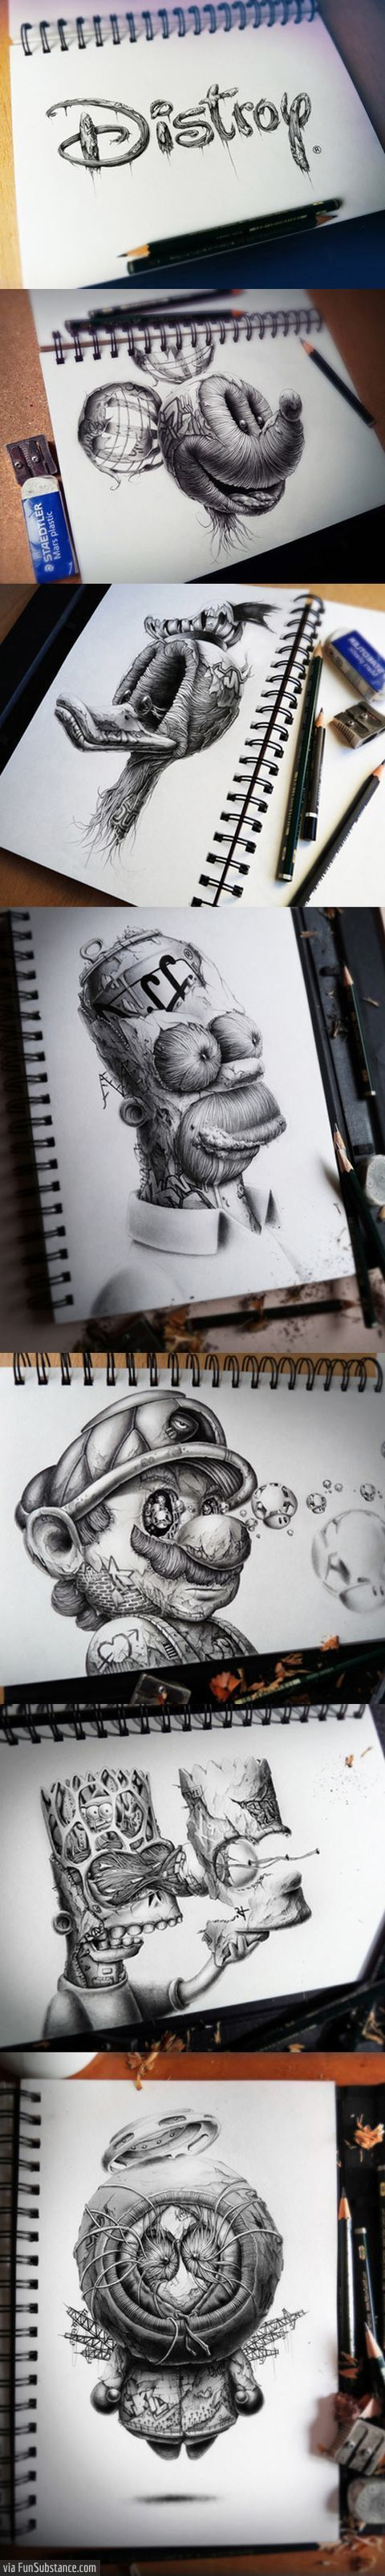 I love this!! I have GOT to start drawing again... :/